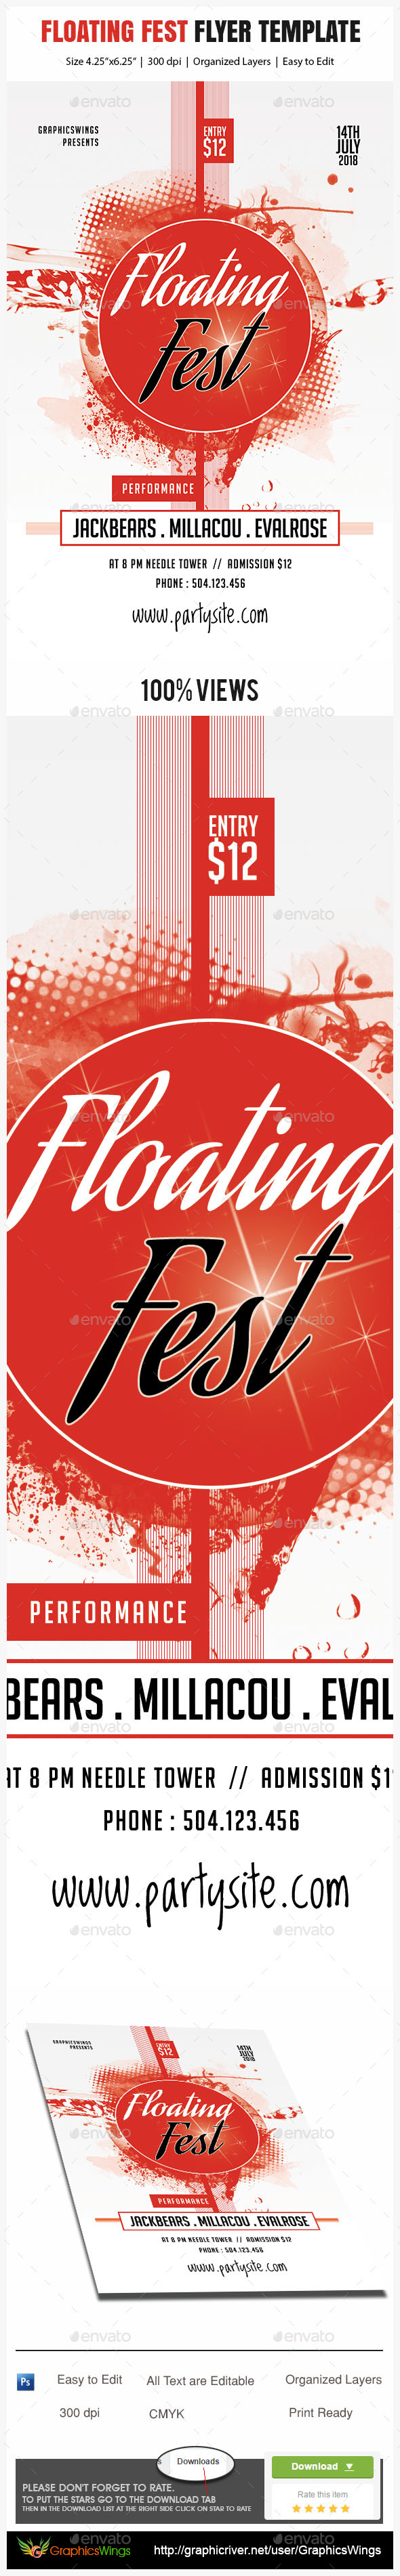 Floating Fest Flyer Template - Events Flyers